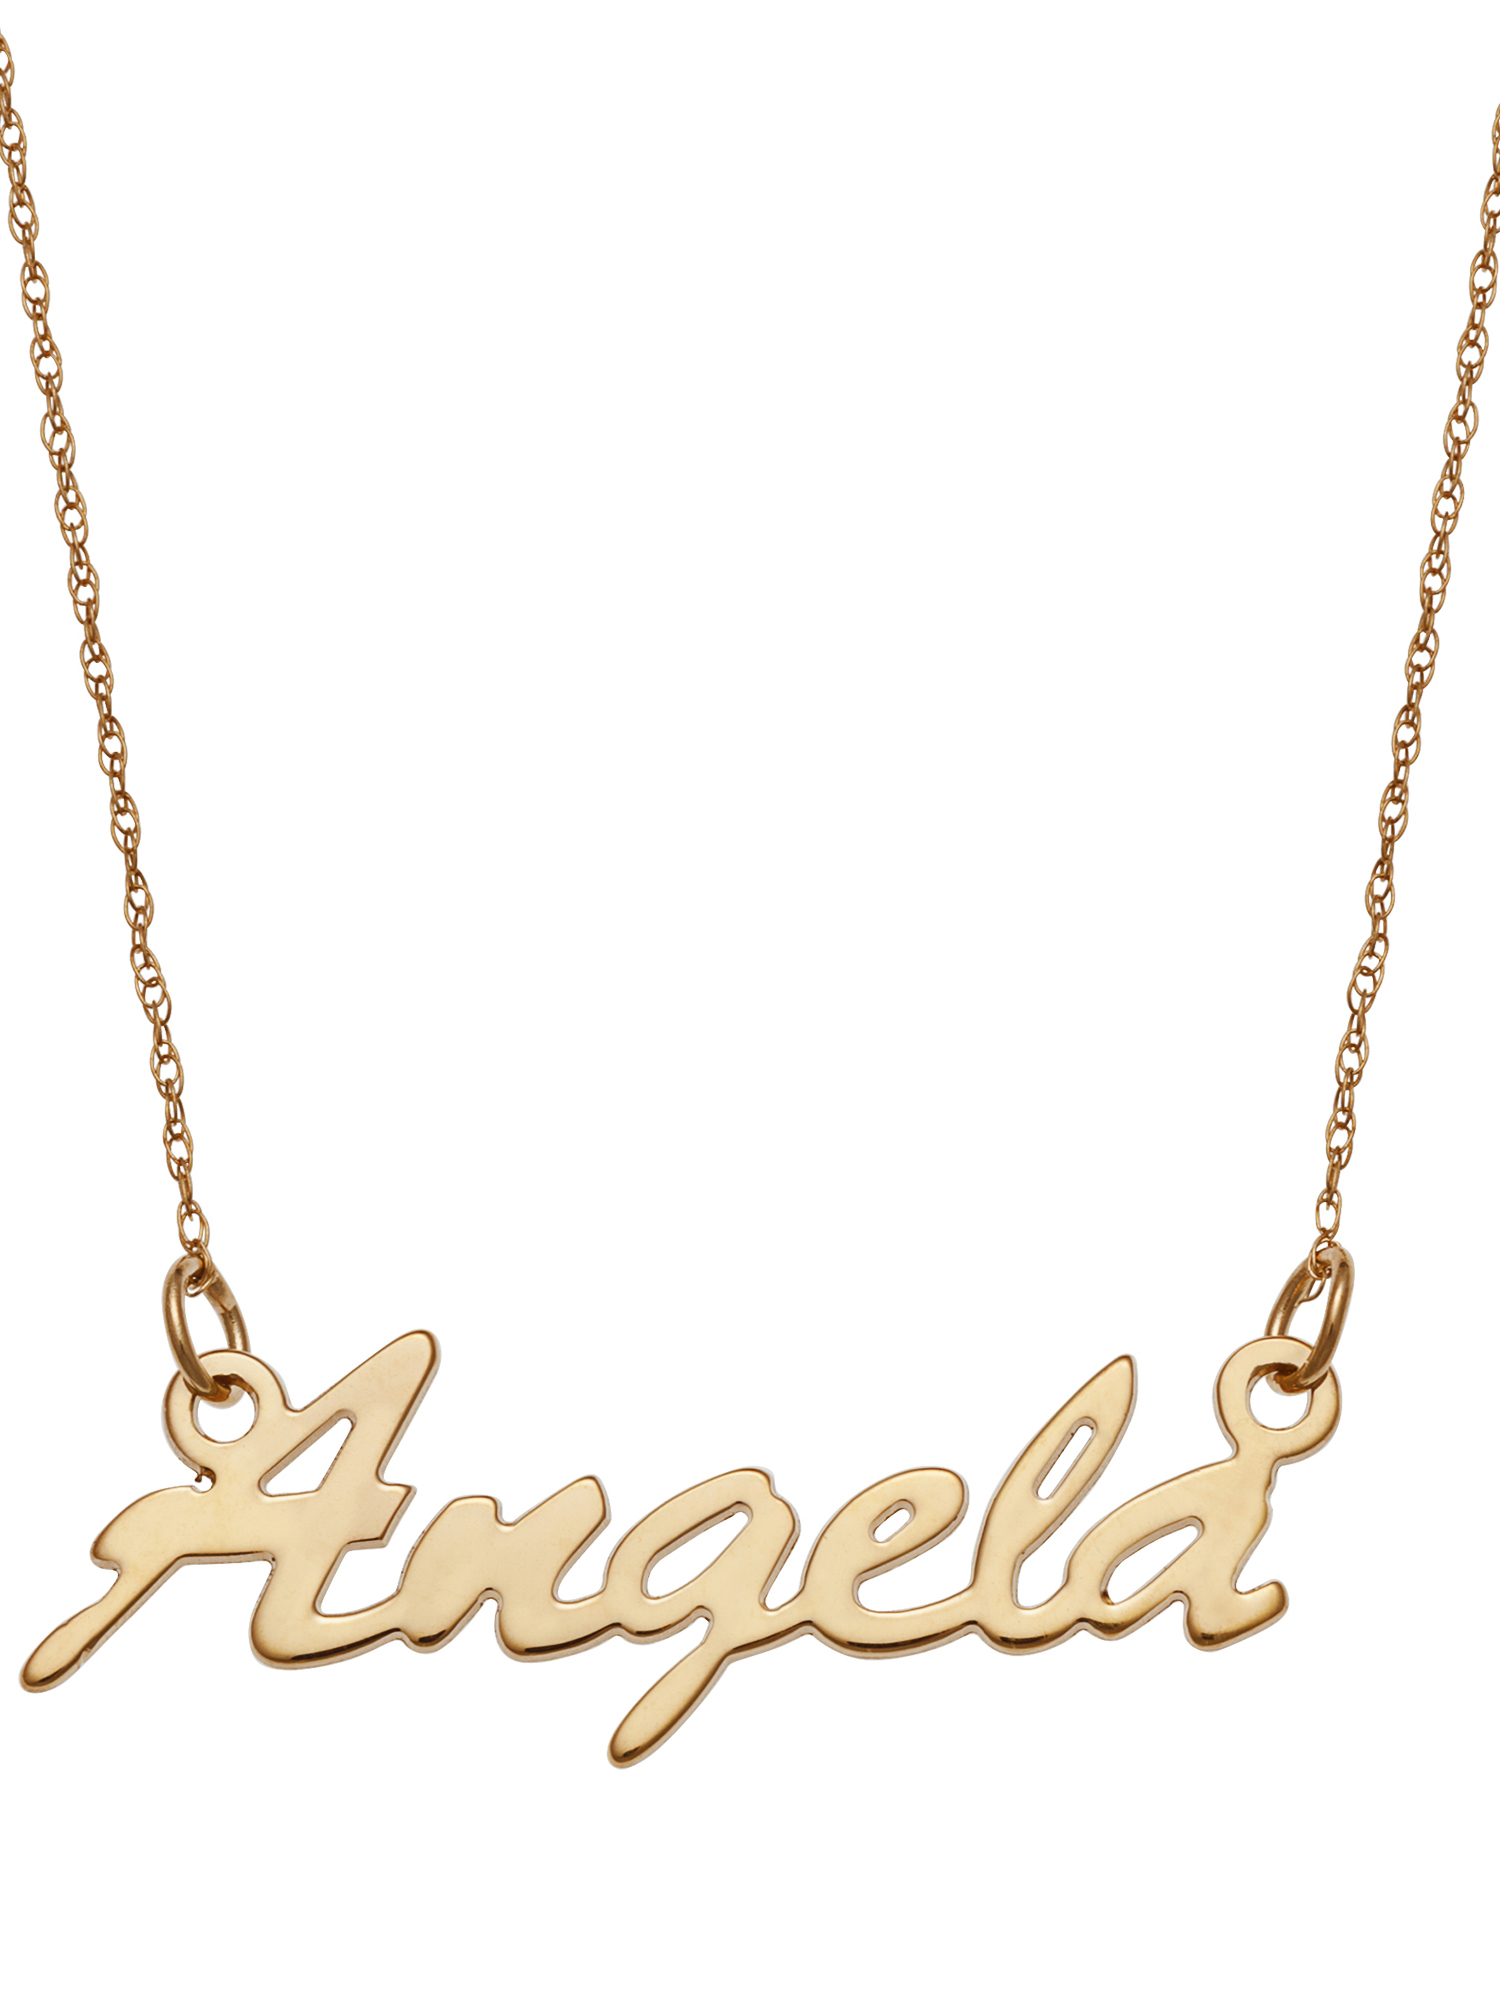 kid image necklace jewelry limoges script over larger bust gold name to personalized zoom drag roll